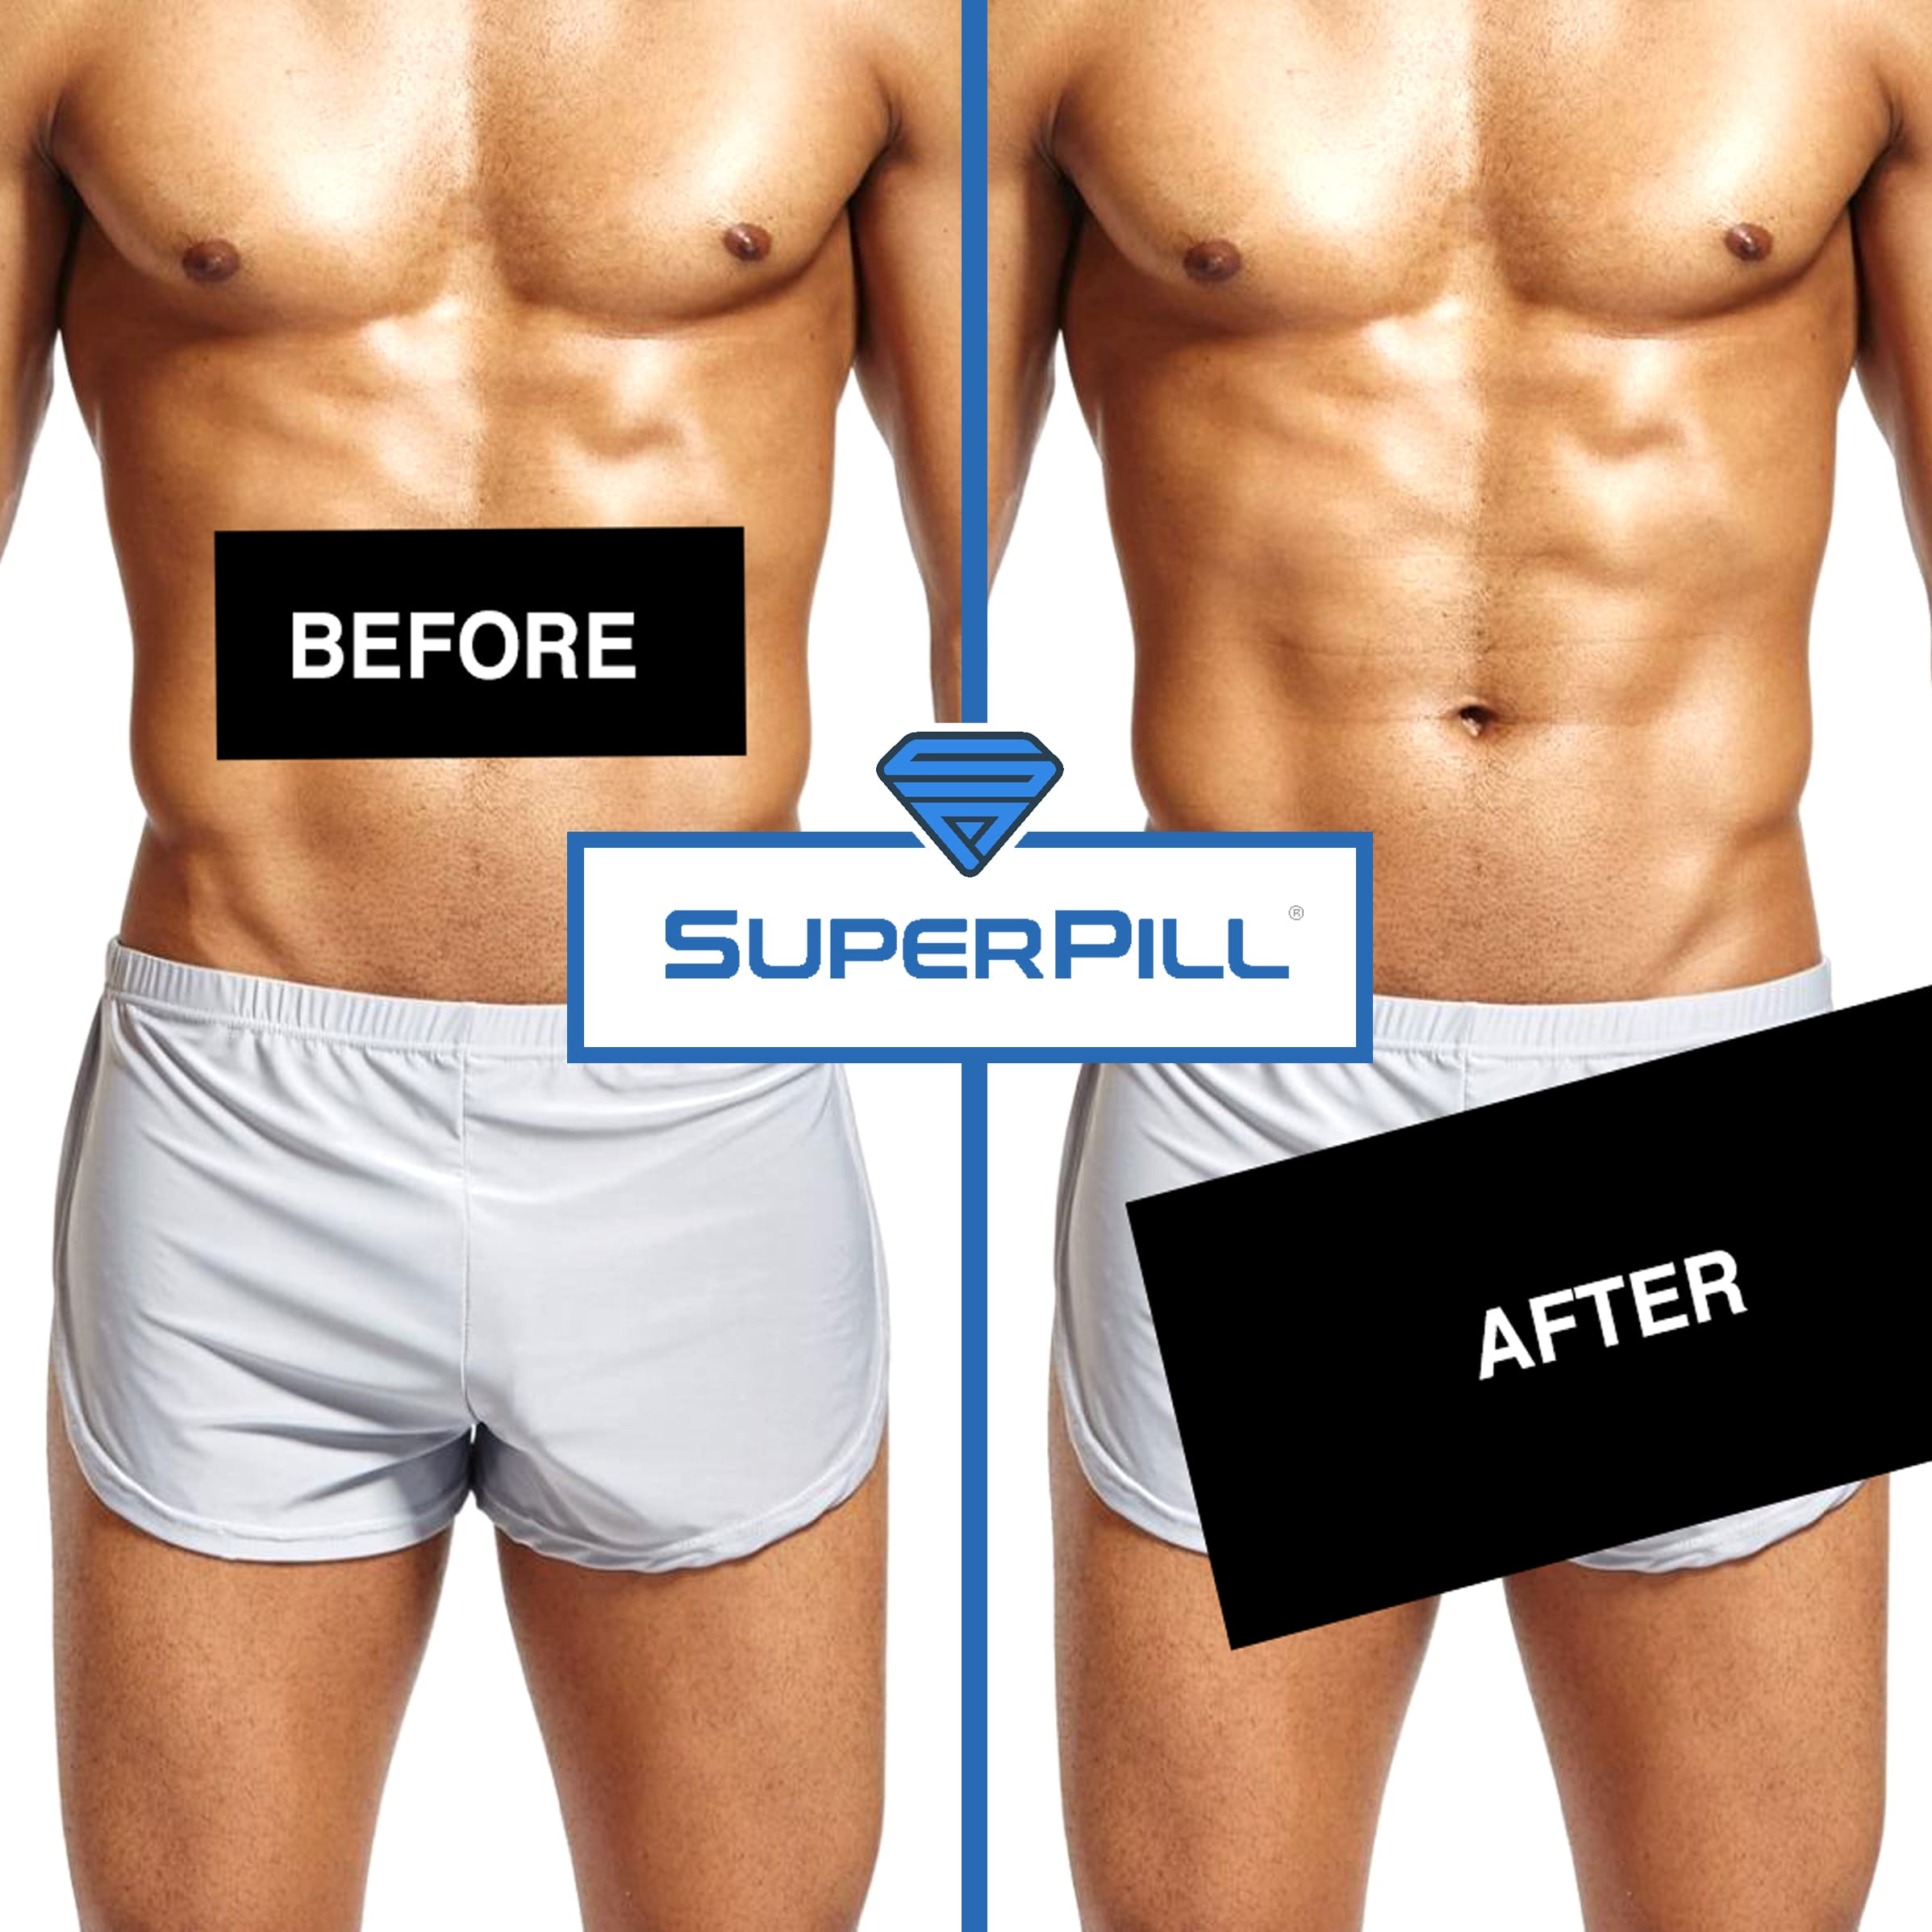 Before & After SuperPill